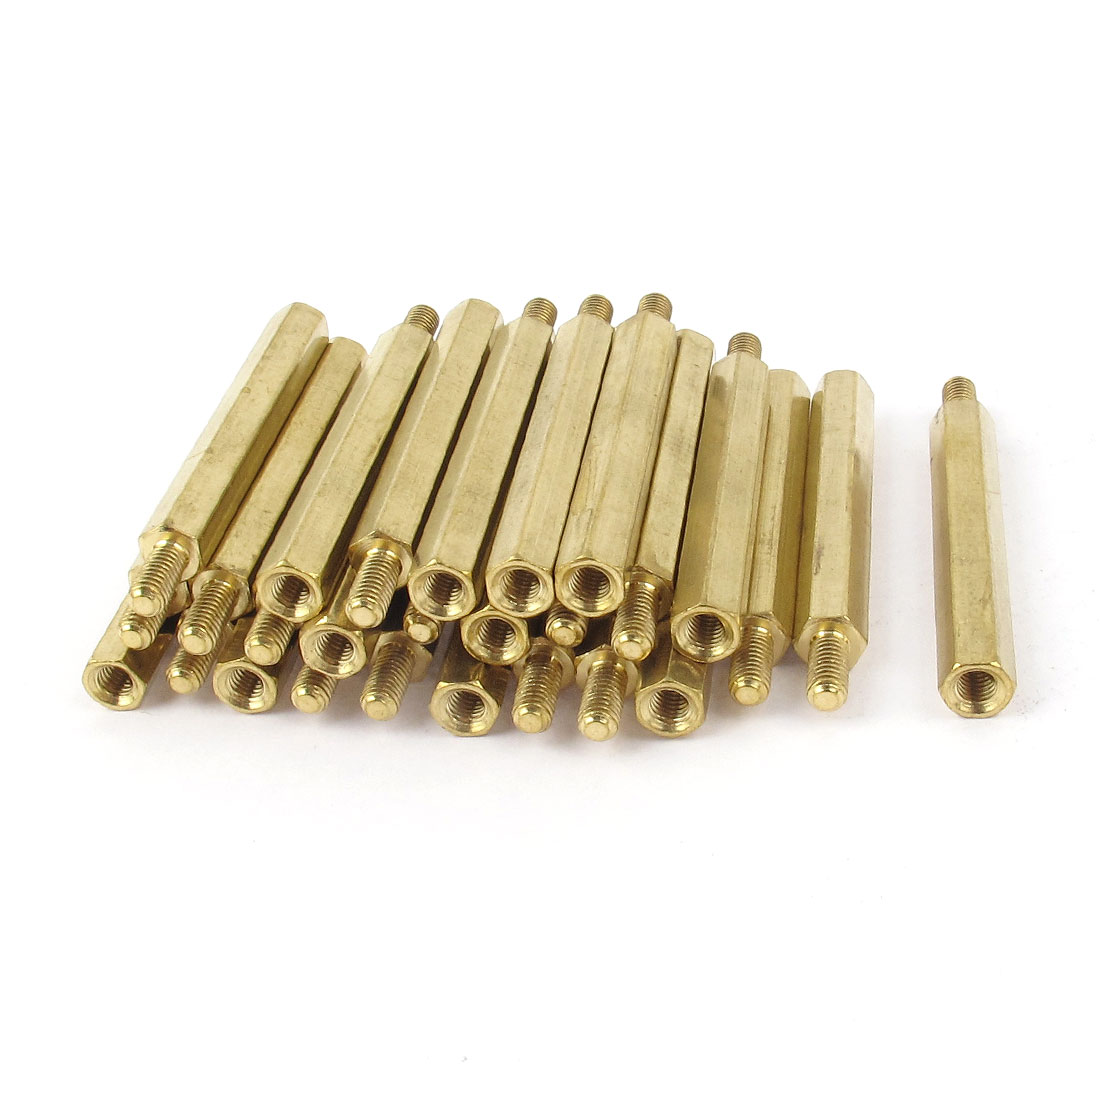 30PCS M3 Male 6mm + Female 35mm Hex Nut Brass Standoff Spacer PCB Motherboard Pillar Support M3x35+6mm